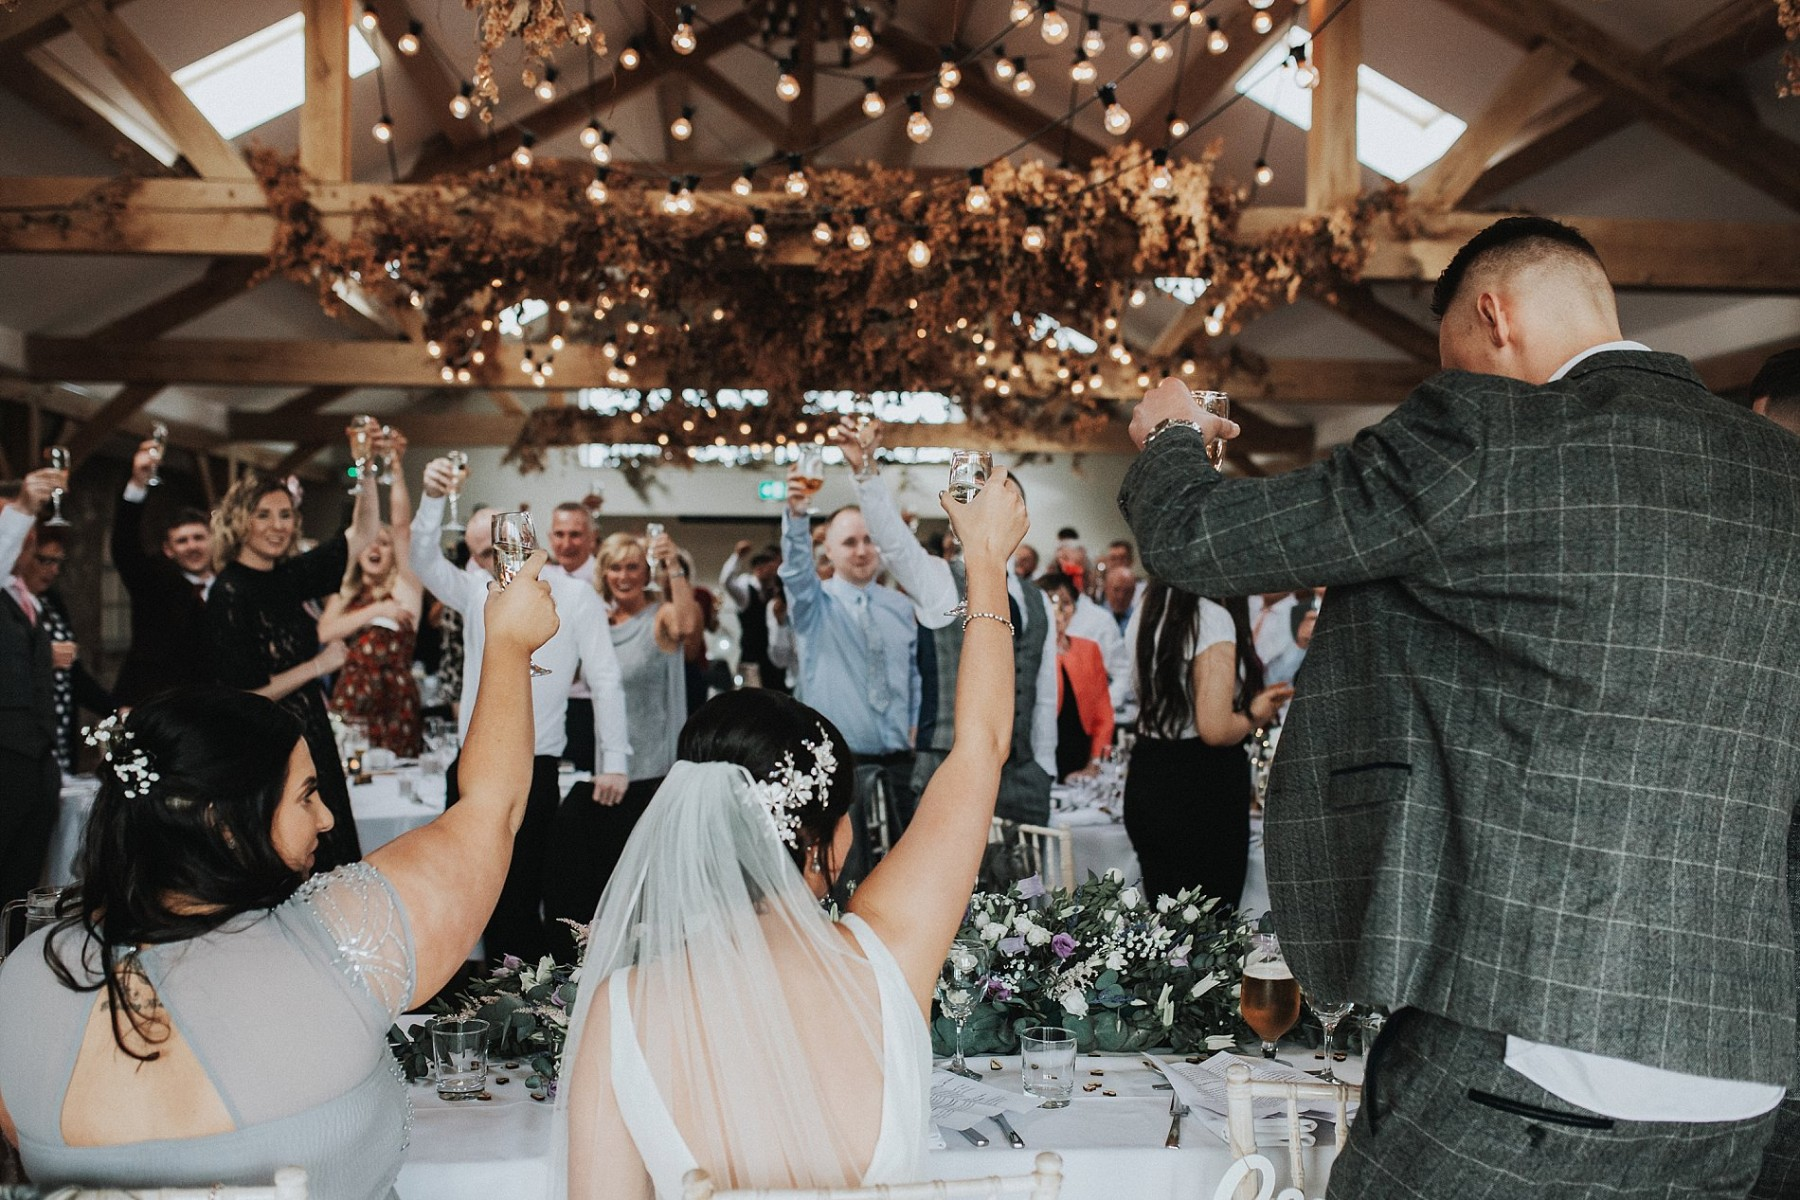 Doxford Barns - Belle Bridal Venue Guest List - Chocolate Chip Photography